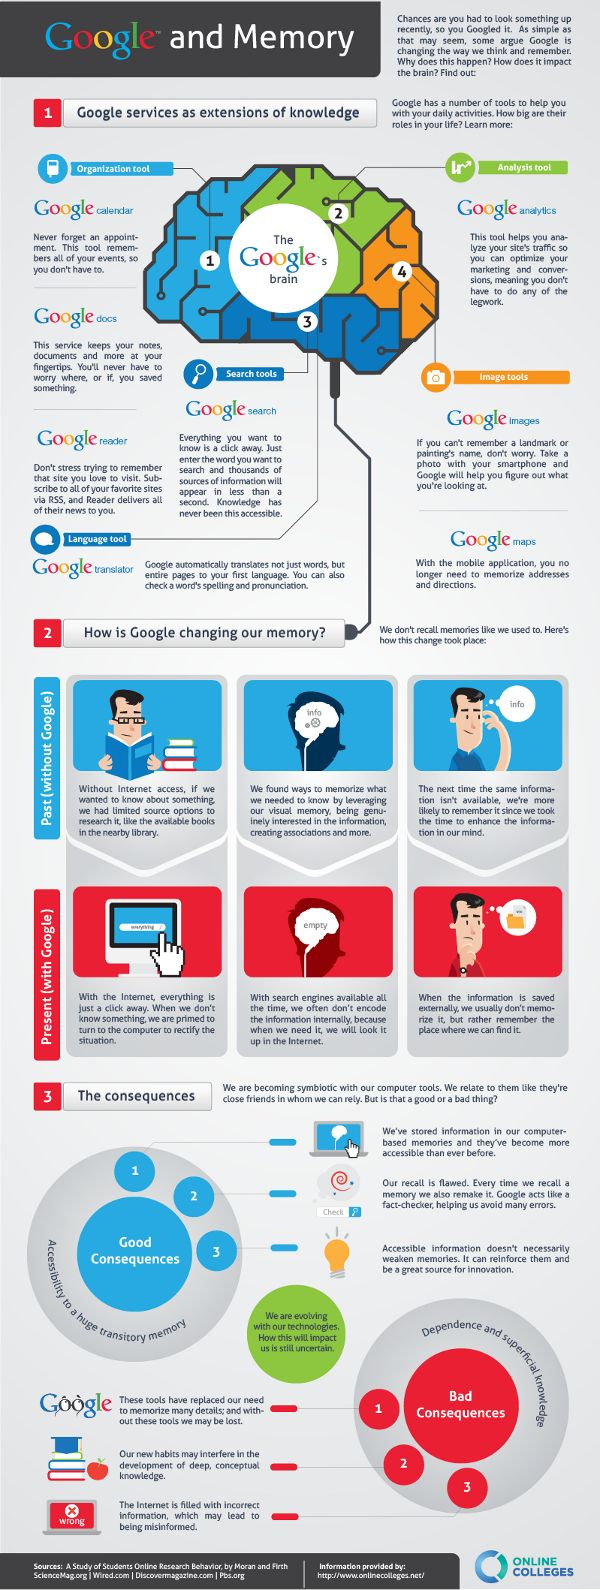 How Google is changing our memory